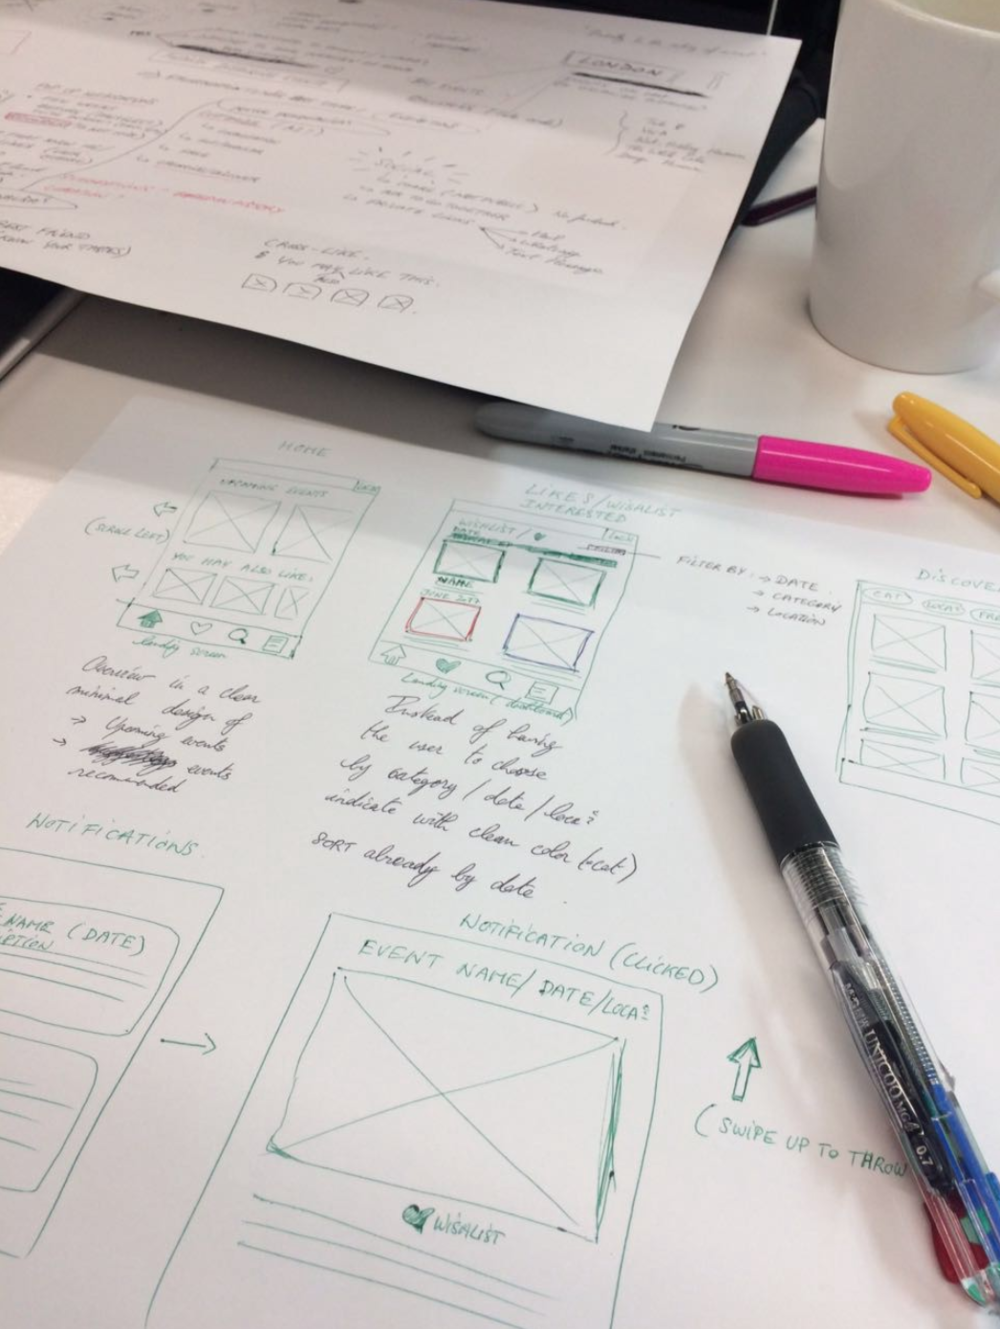 Early sketching/ wireframing